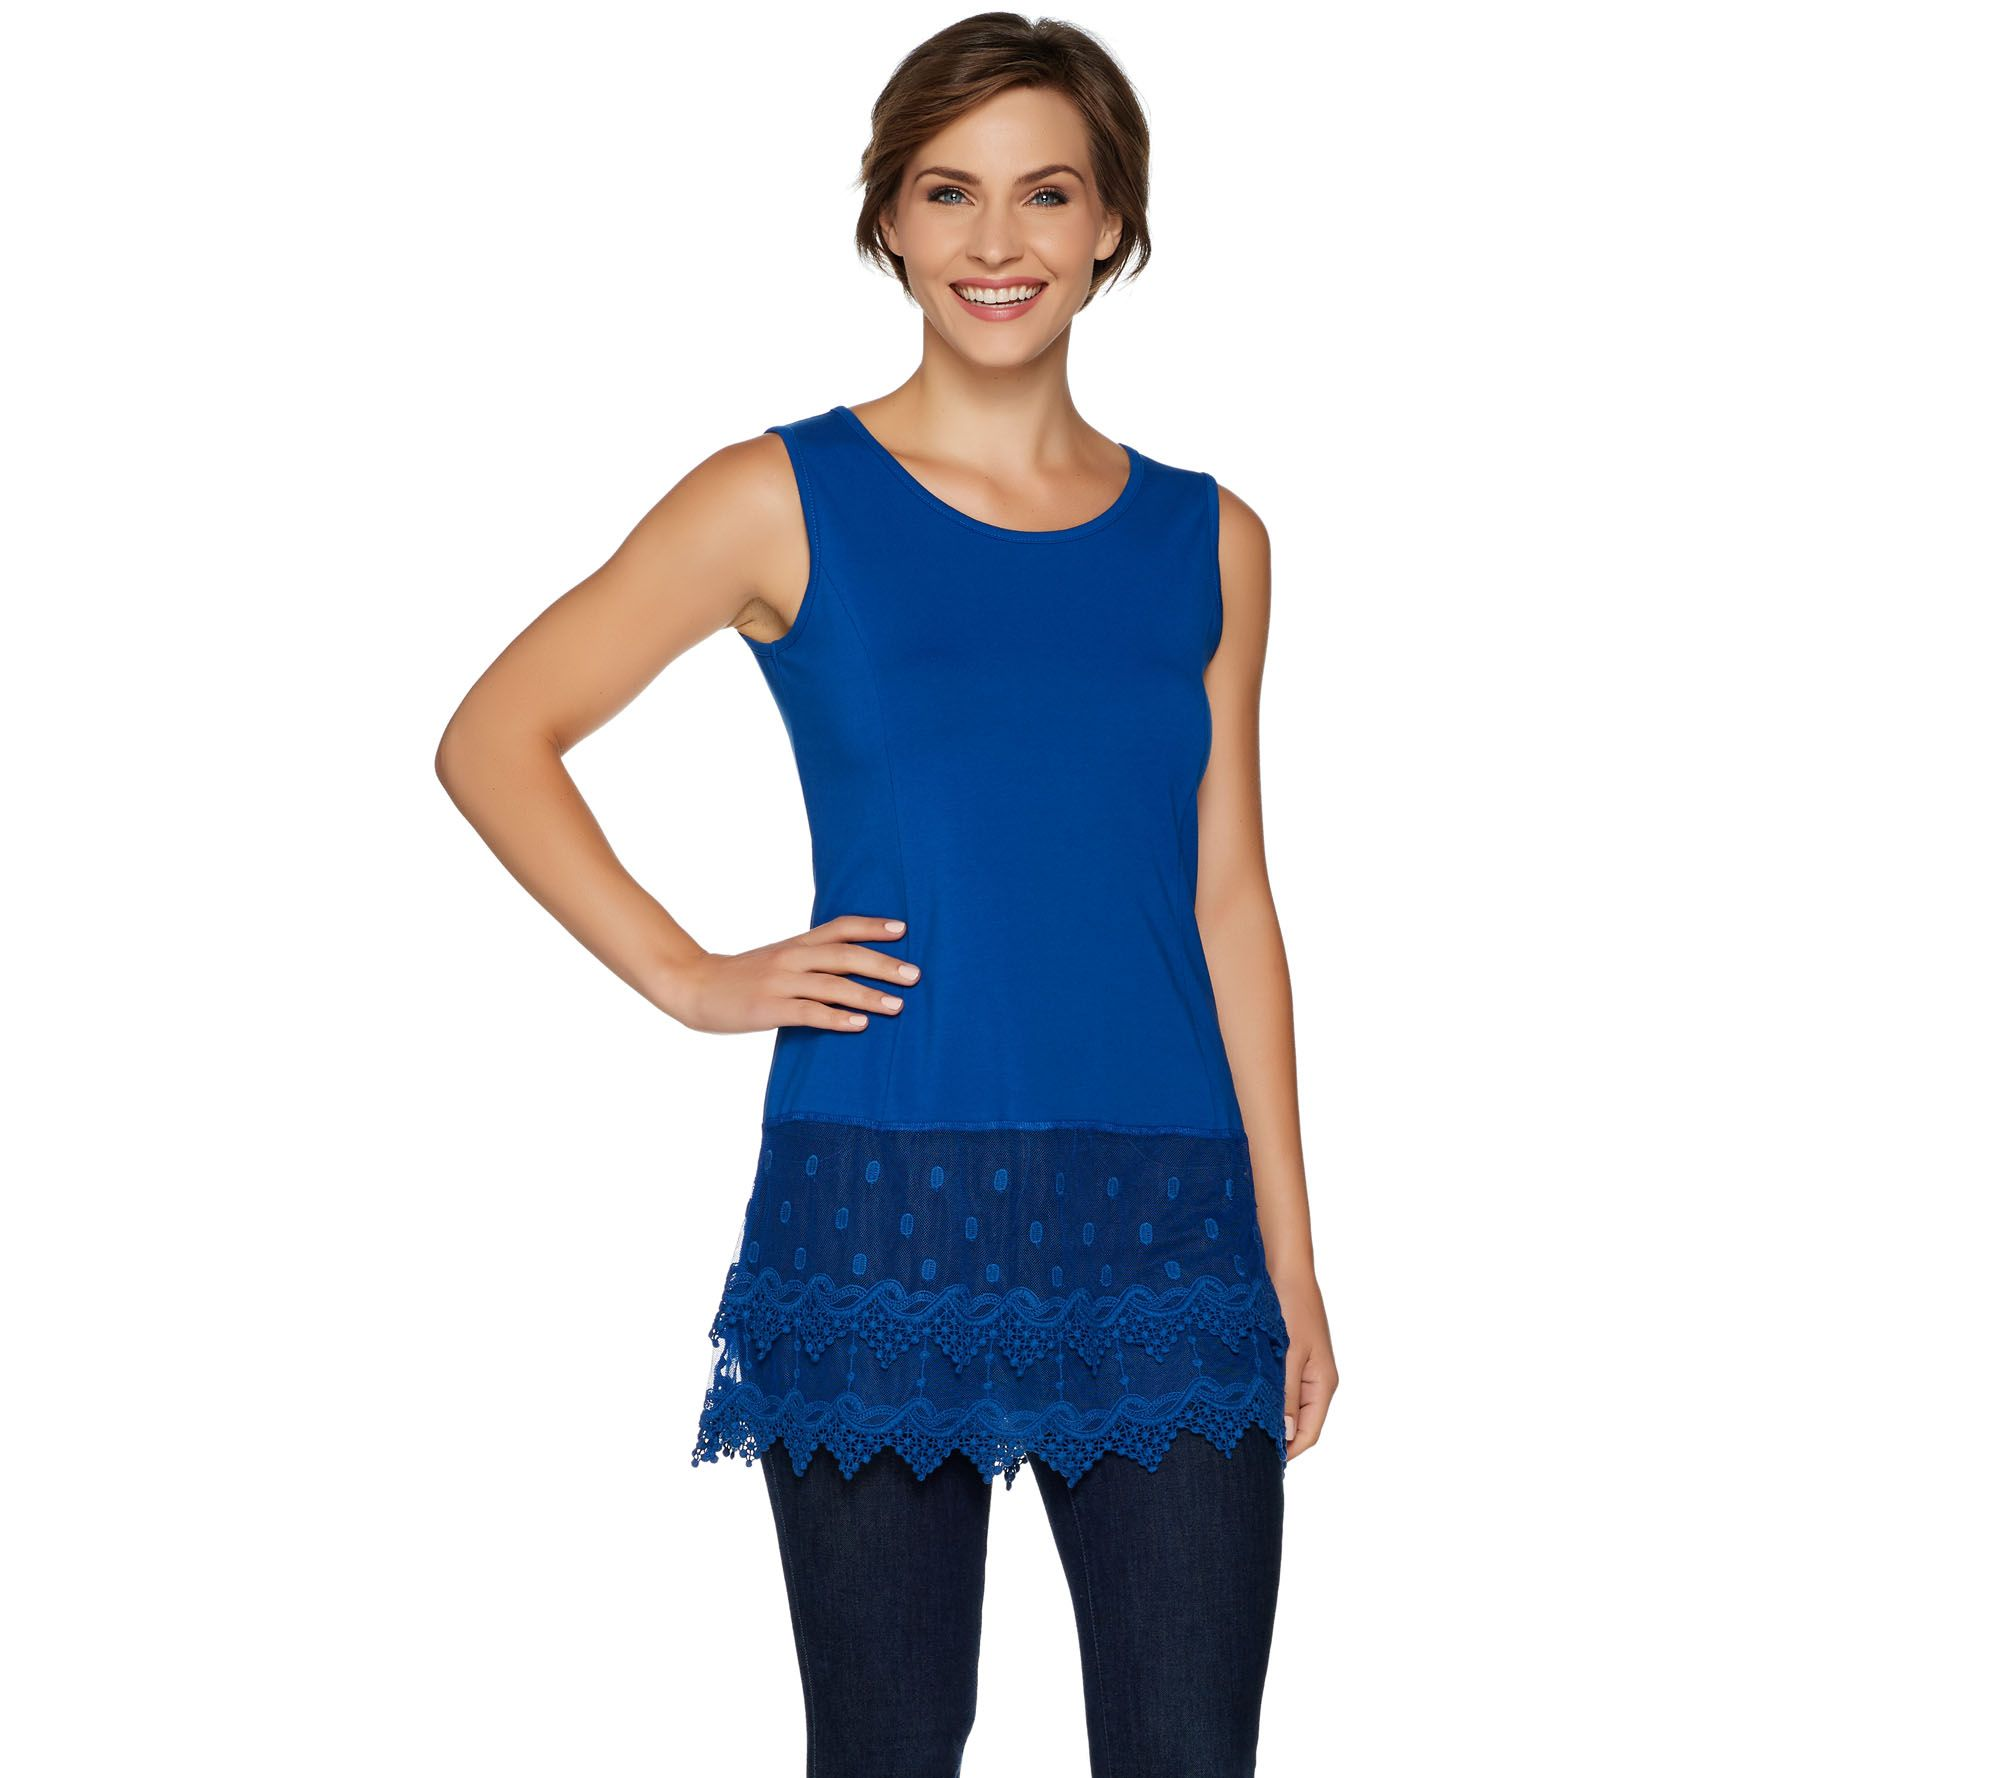 a3298048f7aed Kathleen Kirkwood Layering Tank with Lace Extender - Page 1 — QVC.com